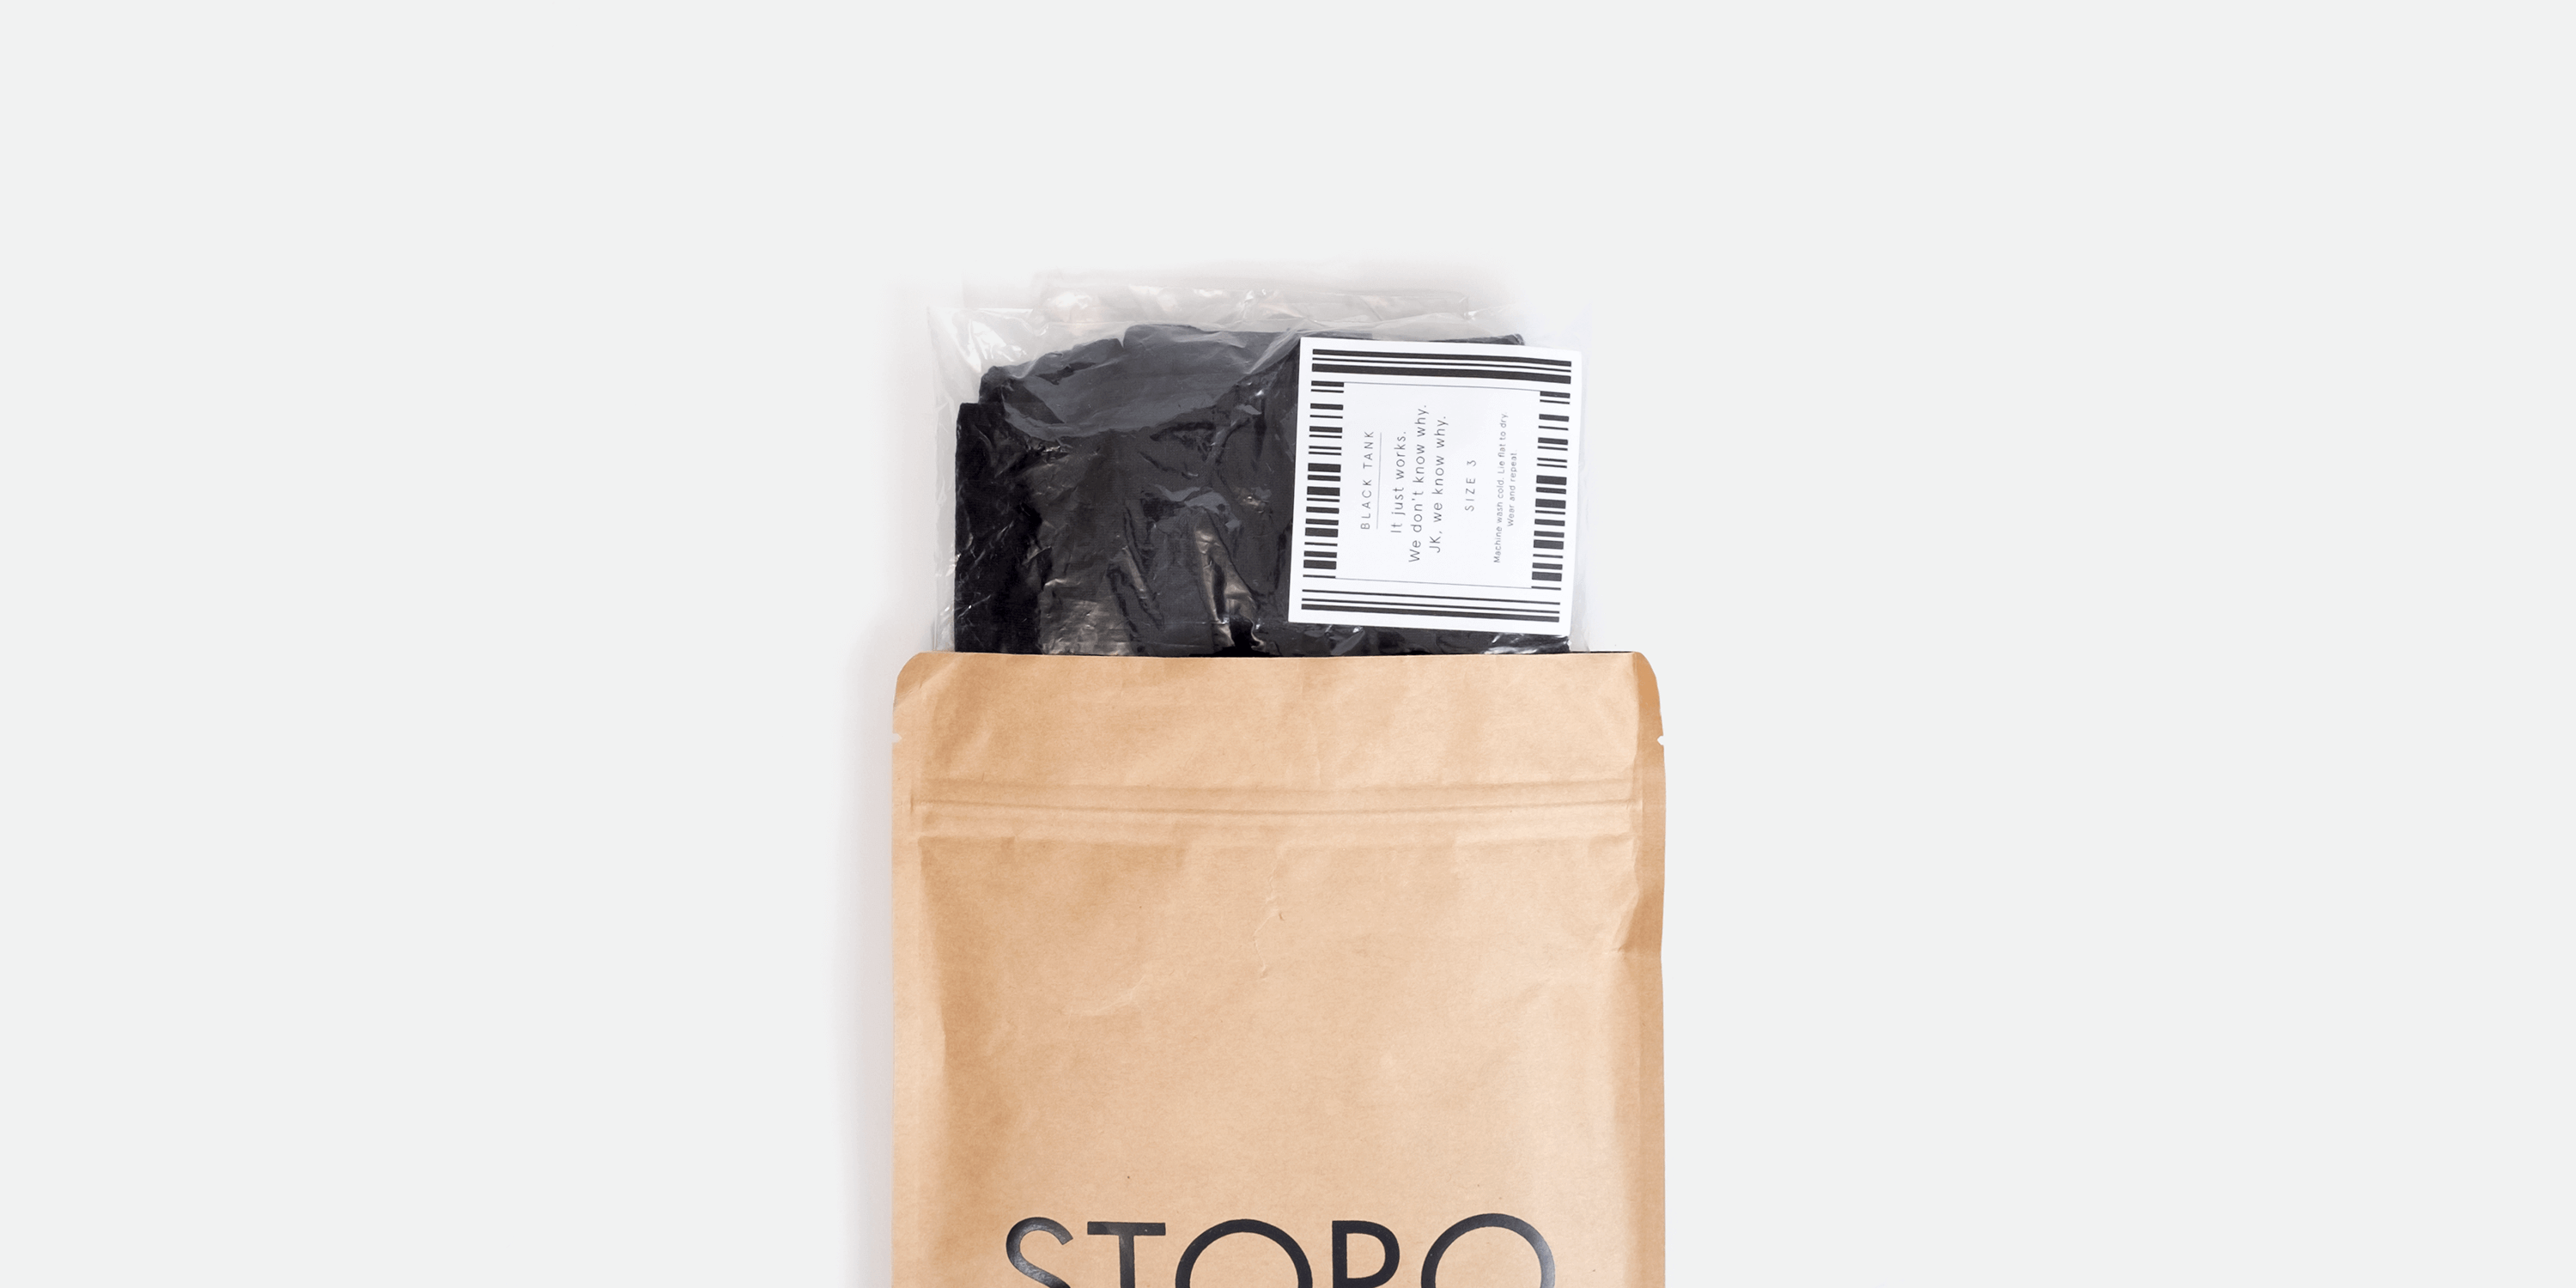 Top view of Storq package